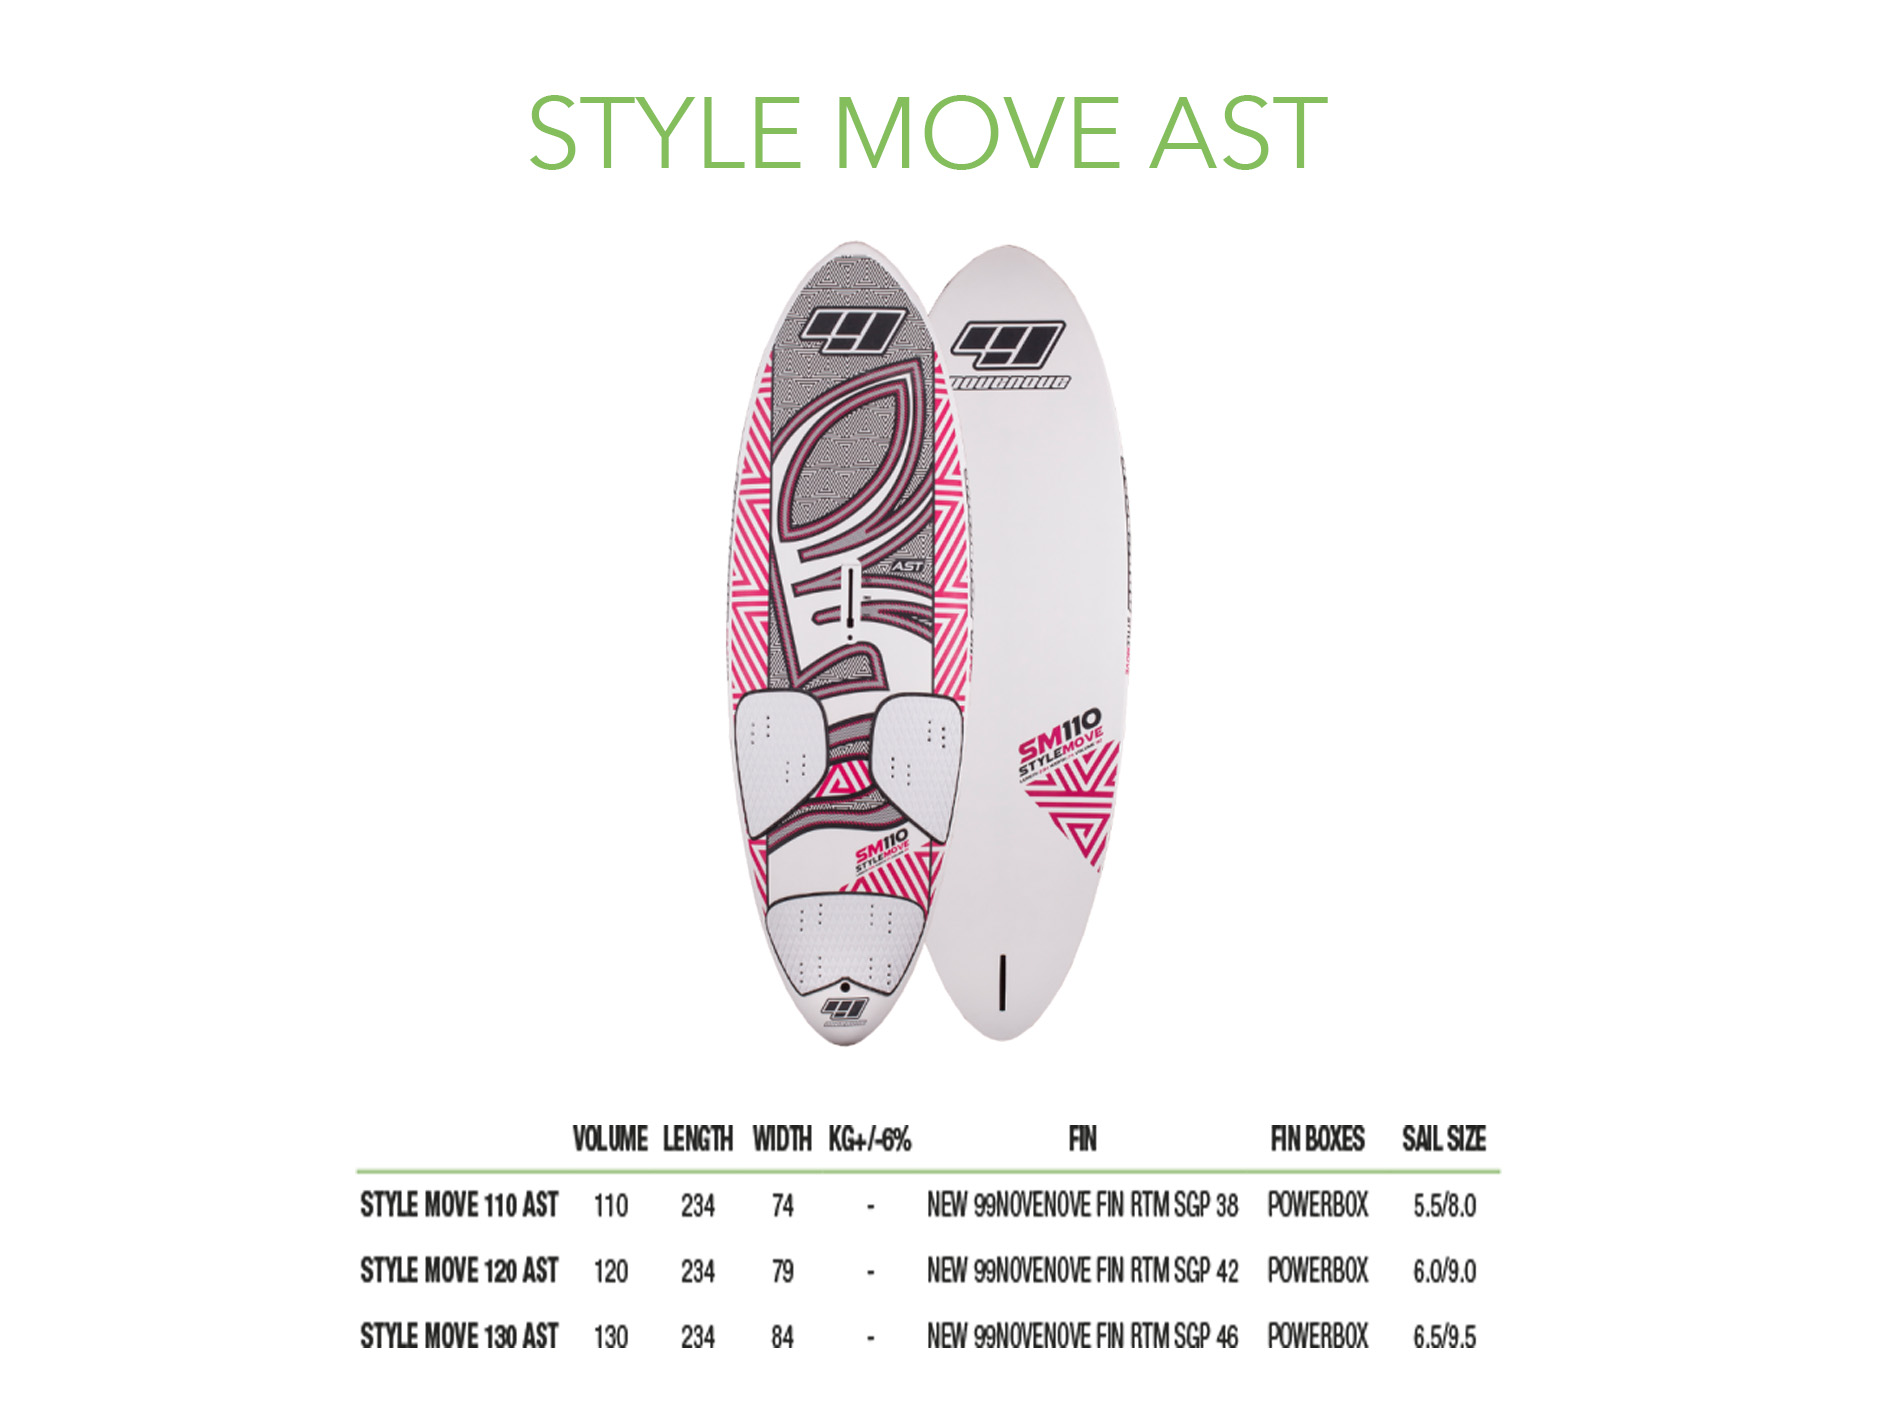 STYLE MOVE AST